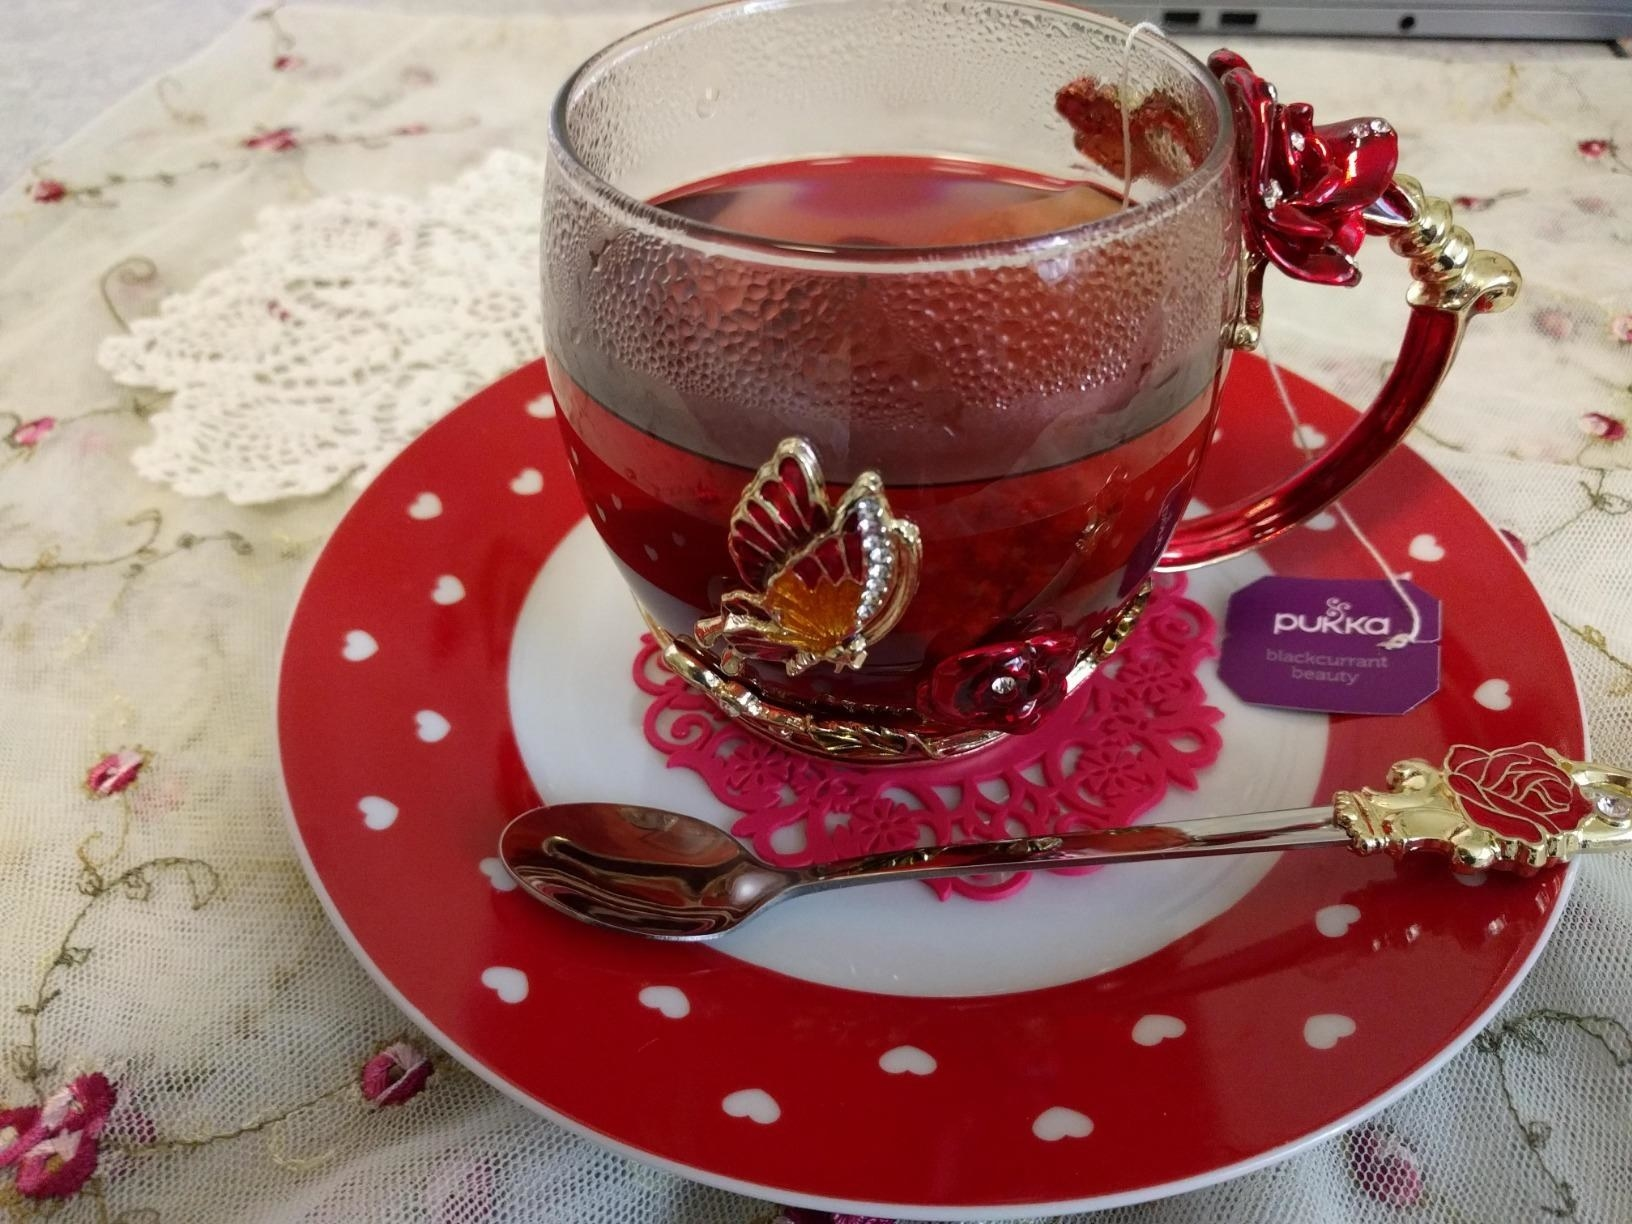 Reviewer photo of the glass mug with floral designs on it and a spoon